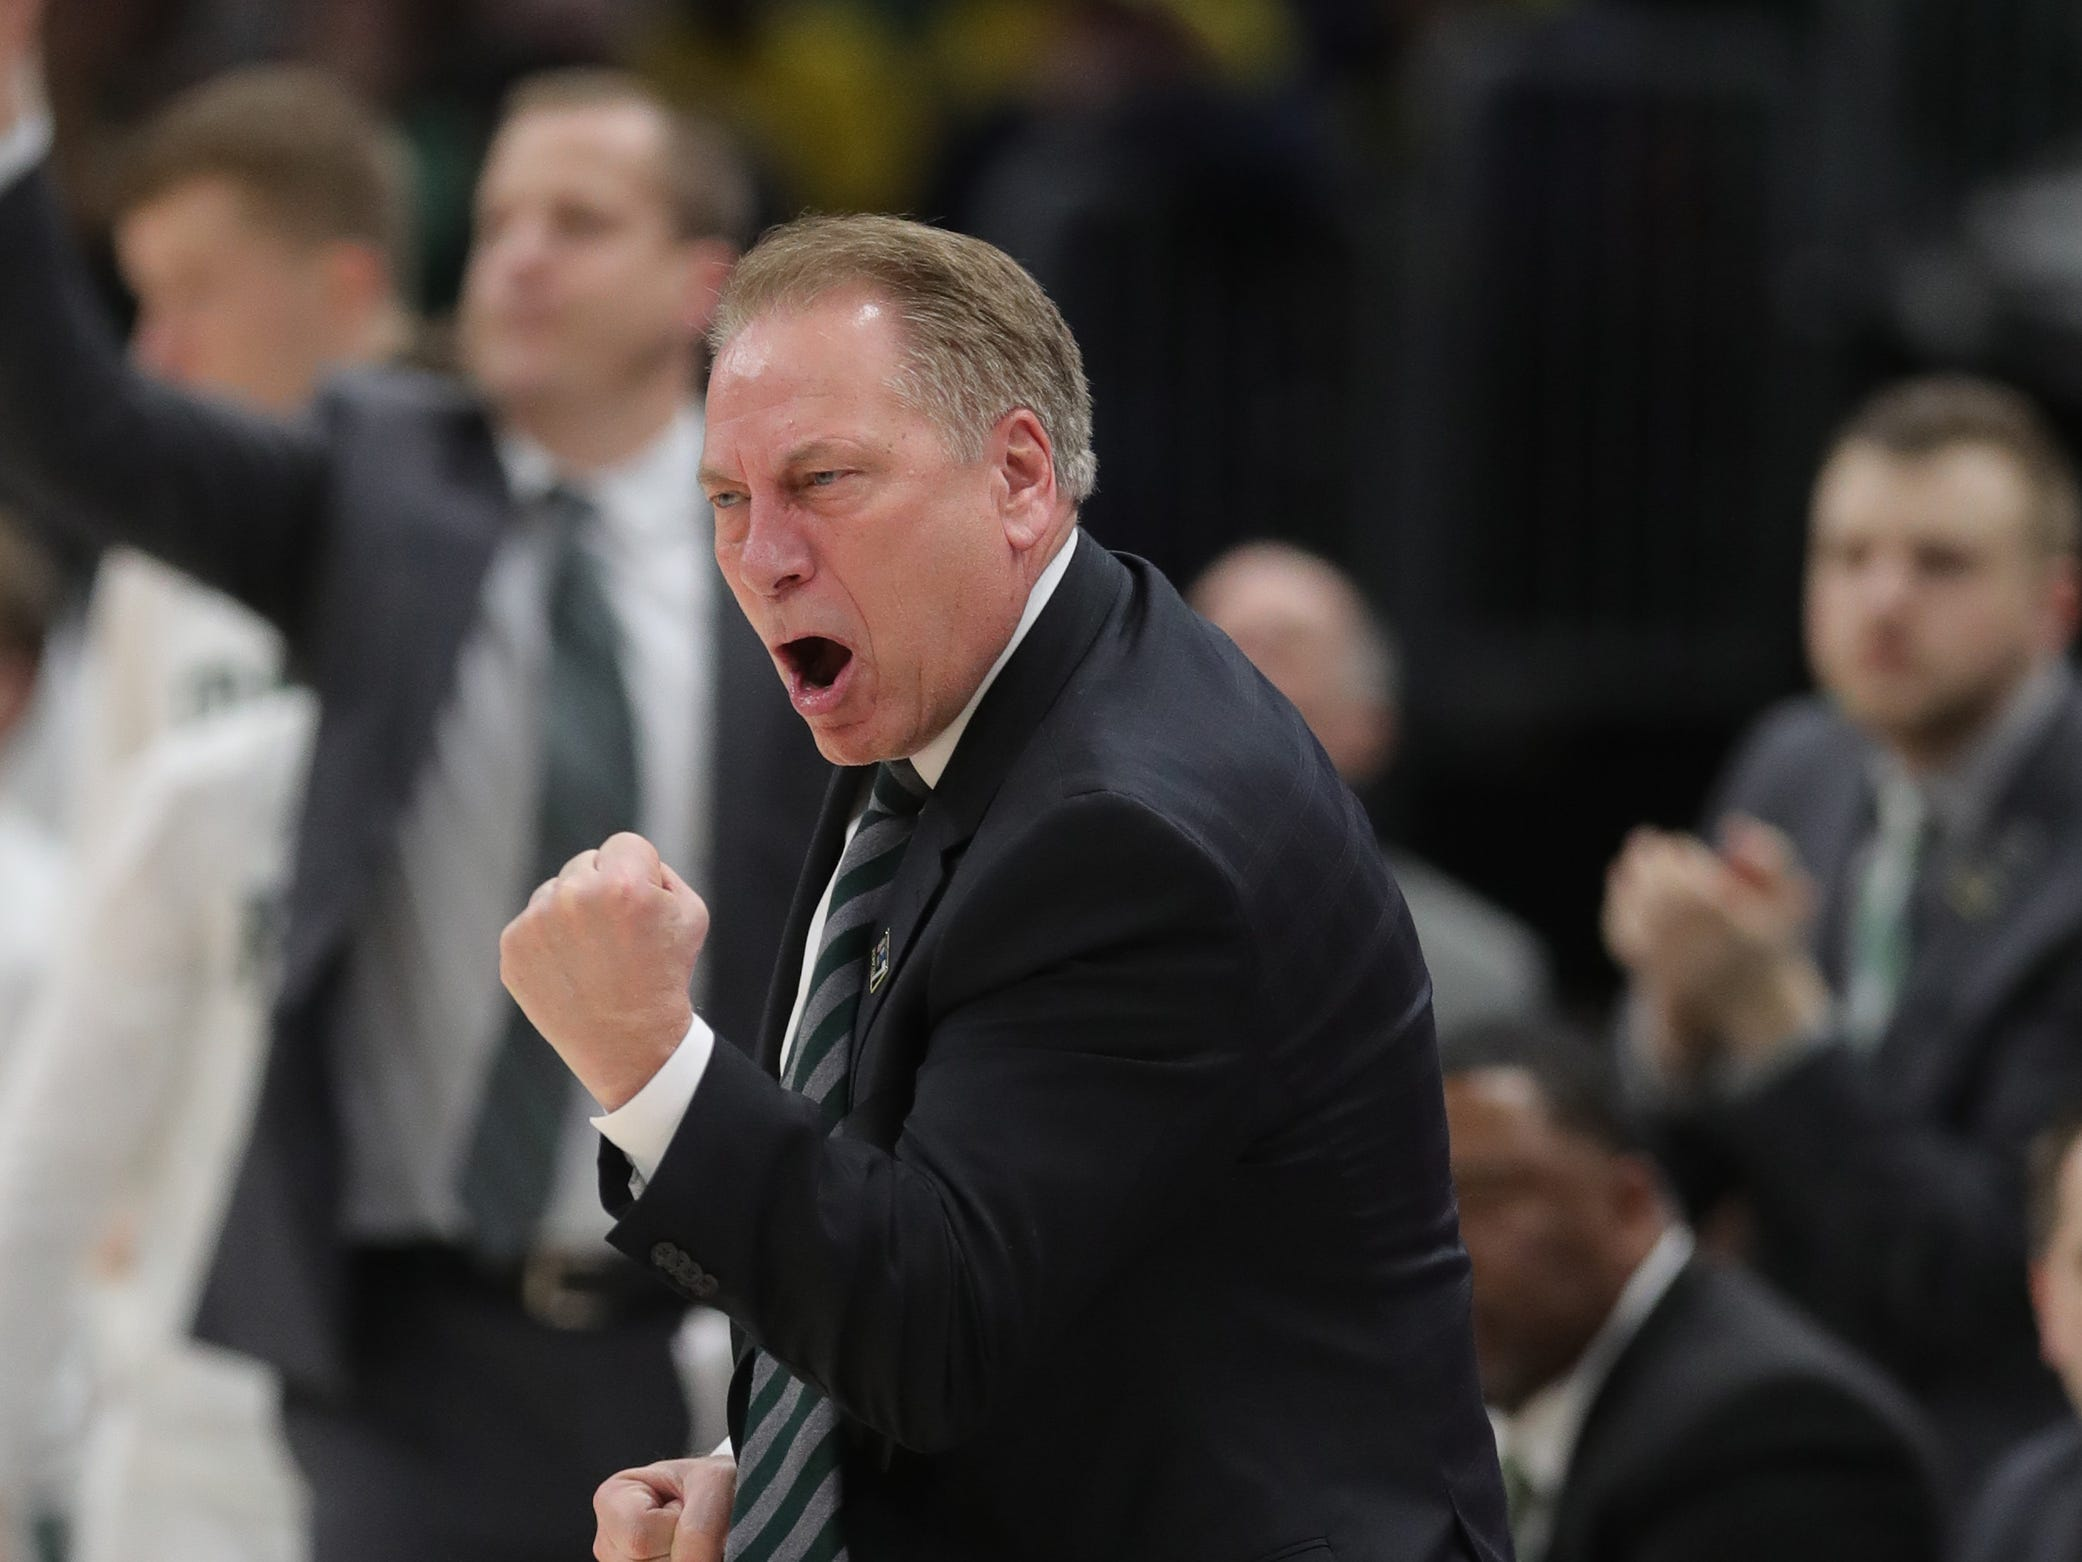 Michigan State coach Tom Izzo encourages his players during the second half of the Big Ten tournament championship win over Michigan, Sunday, March 17, 2019 in Chicago.